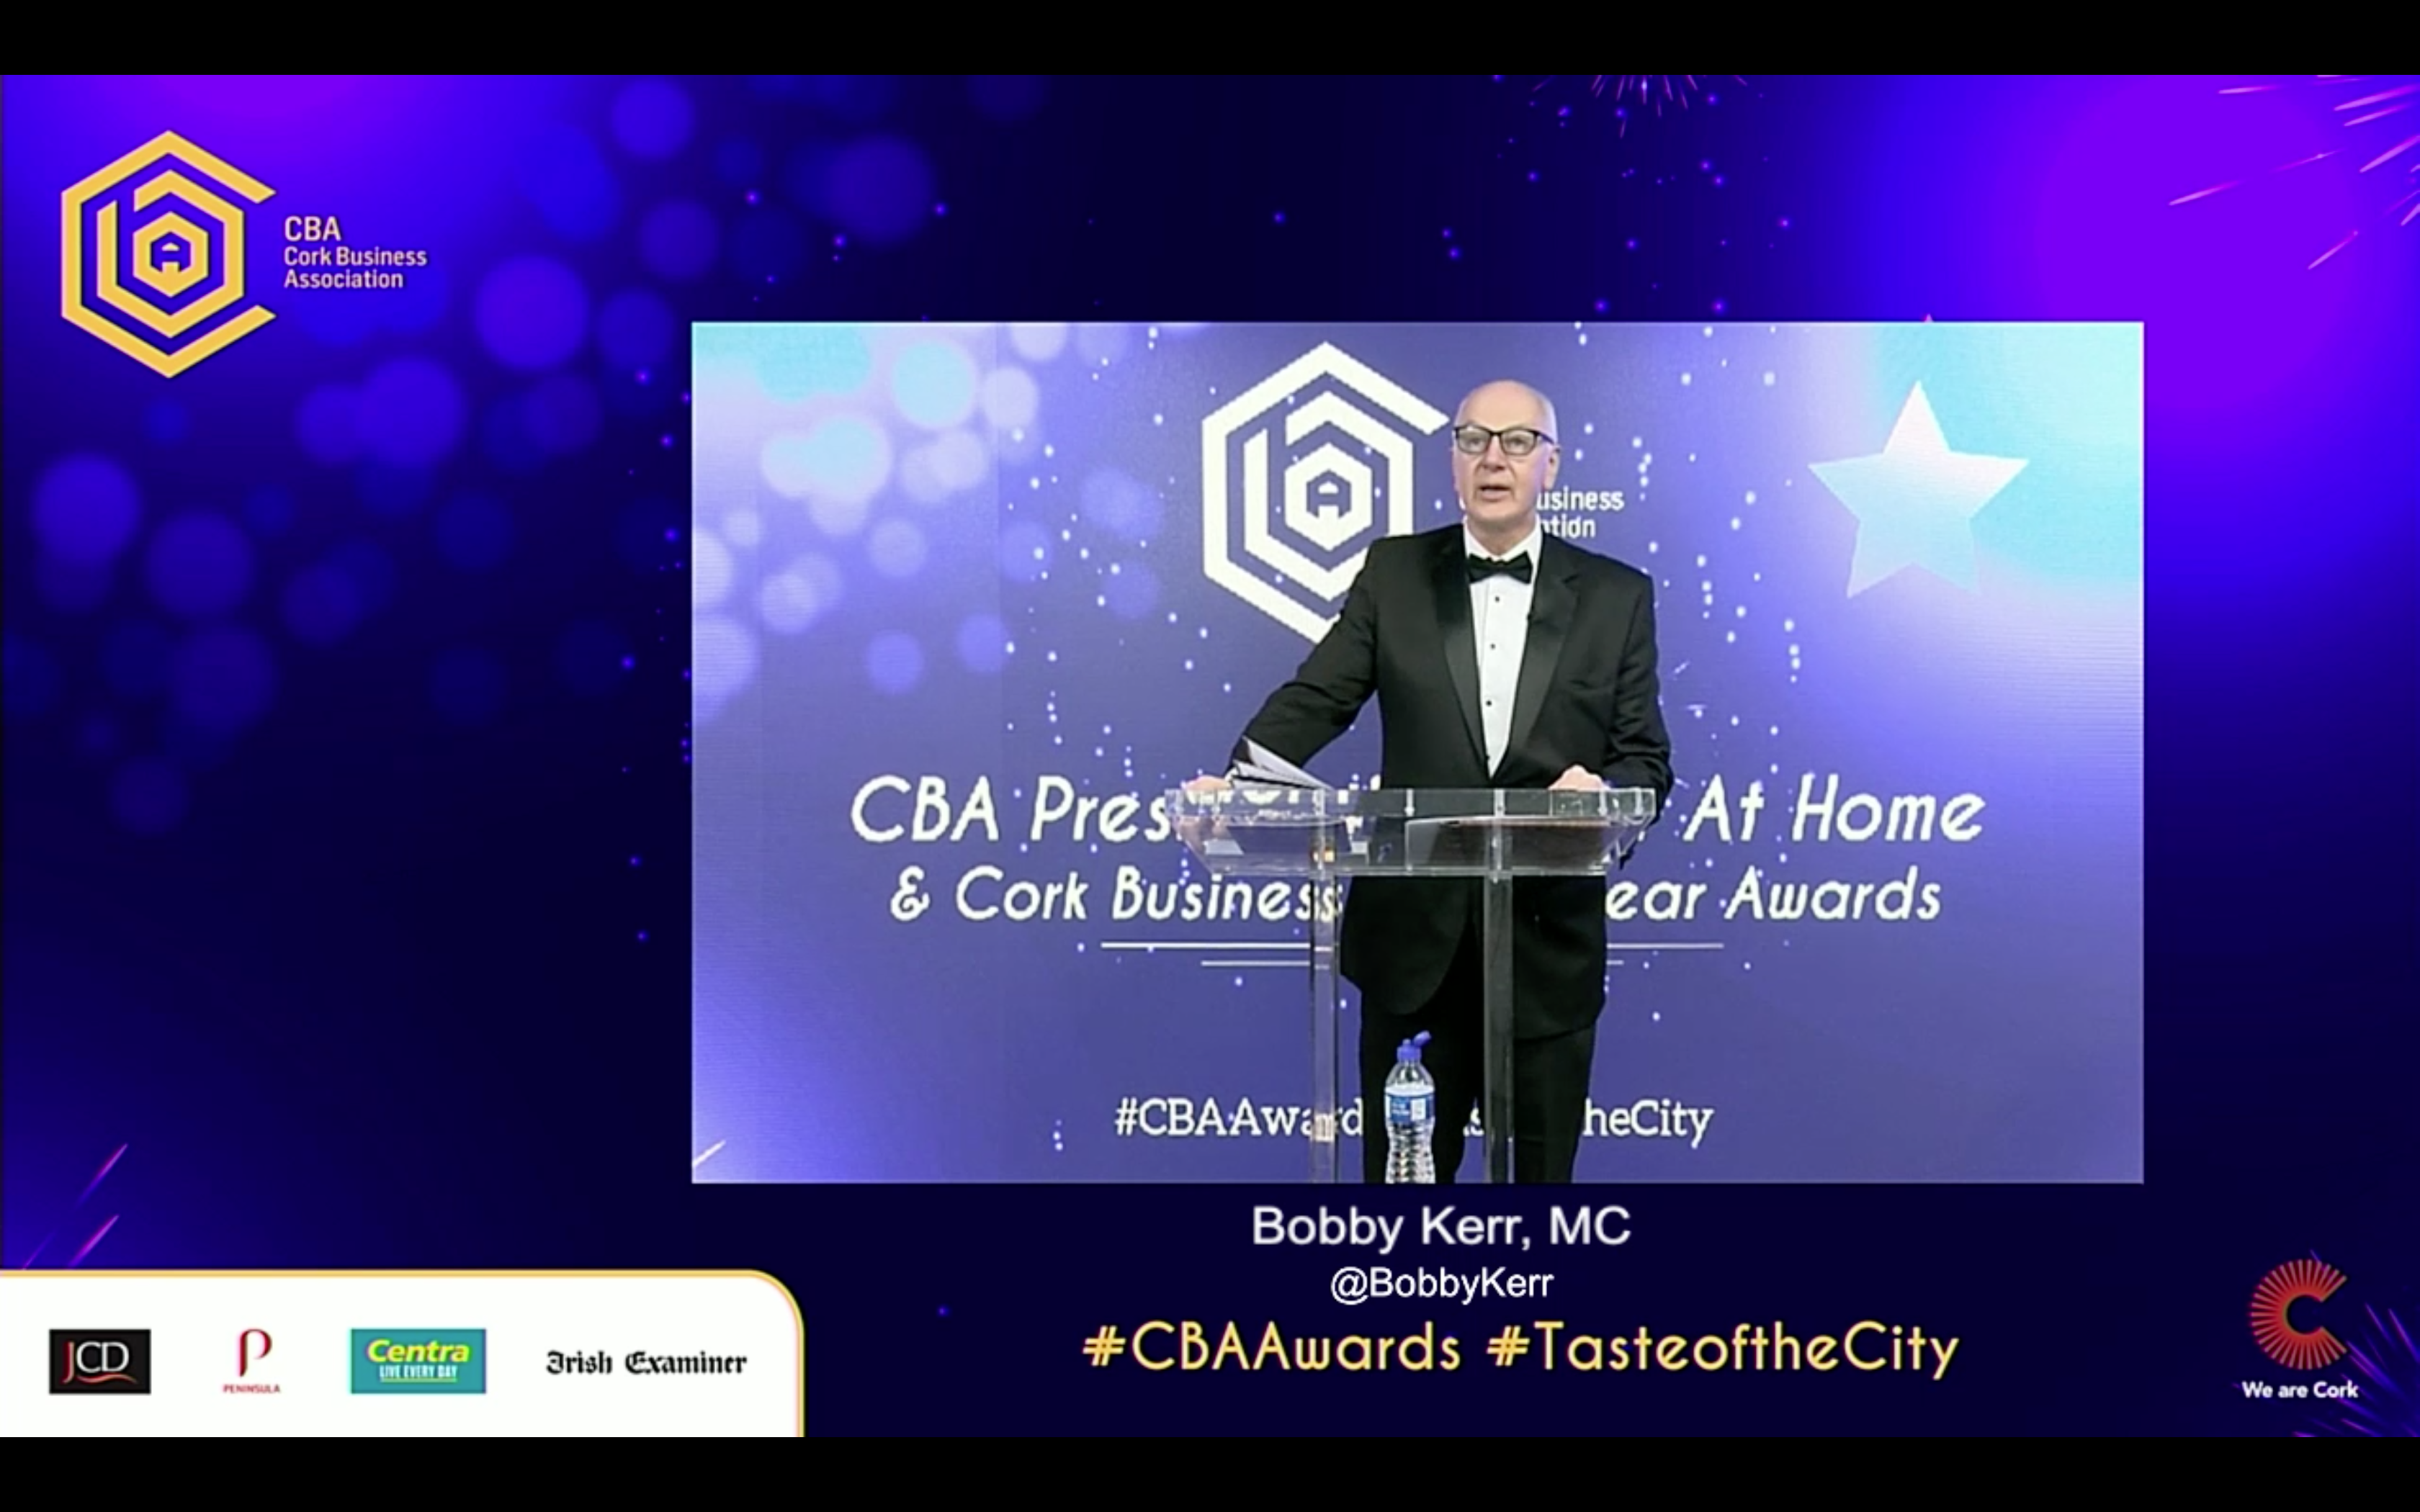 AVC deliver and produce the Cork Business Virtual Awards